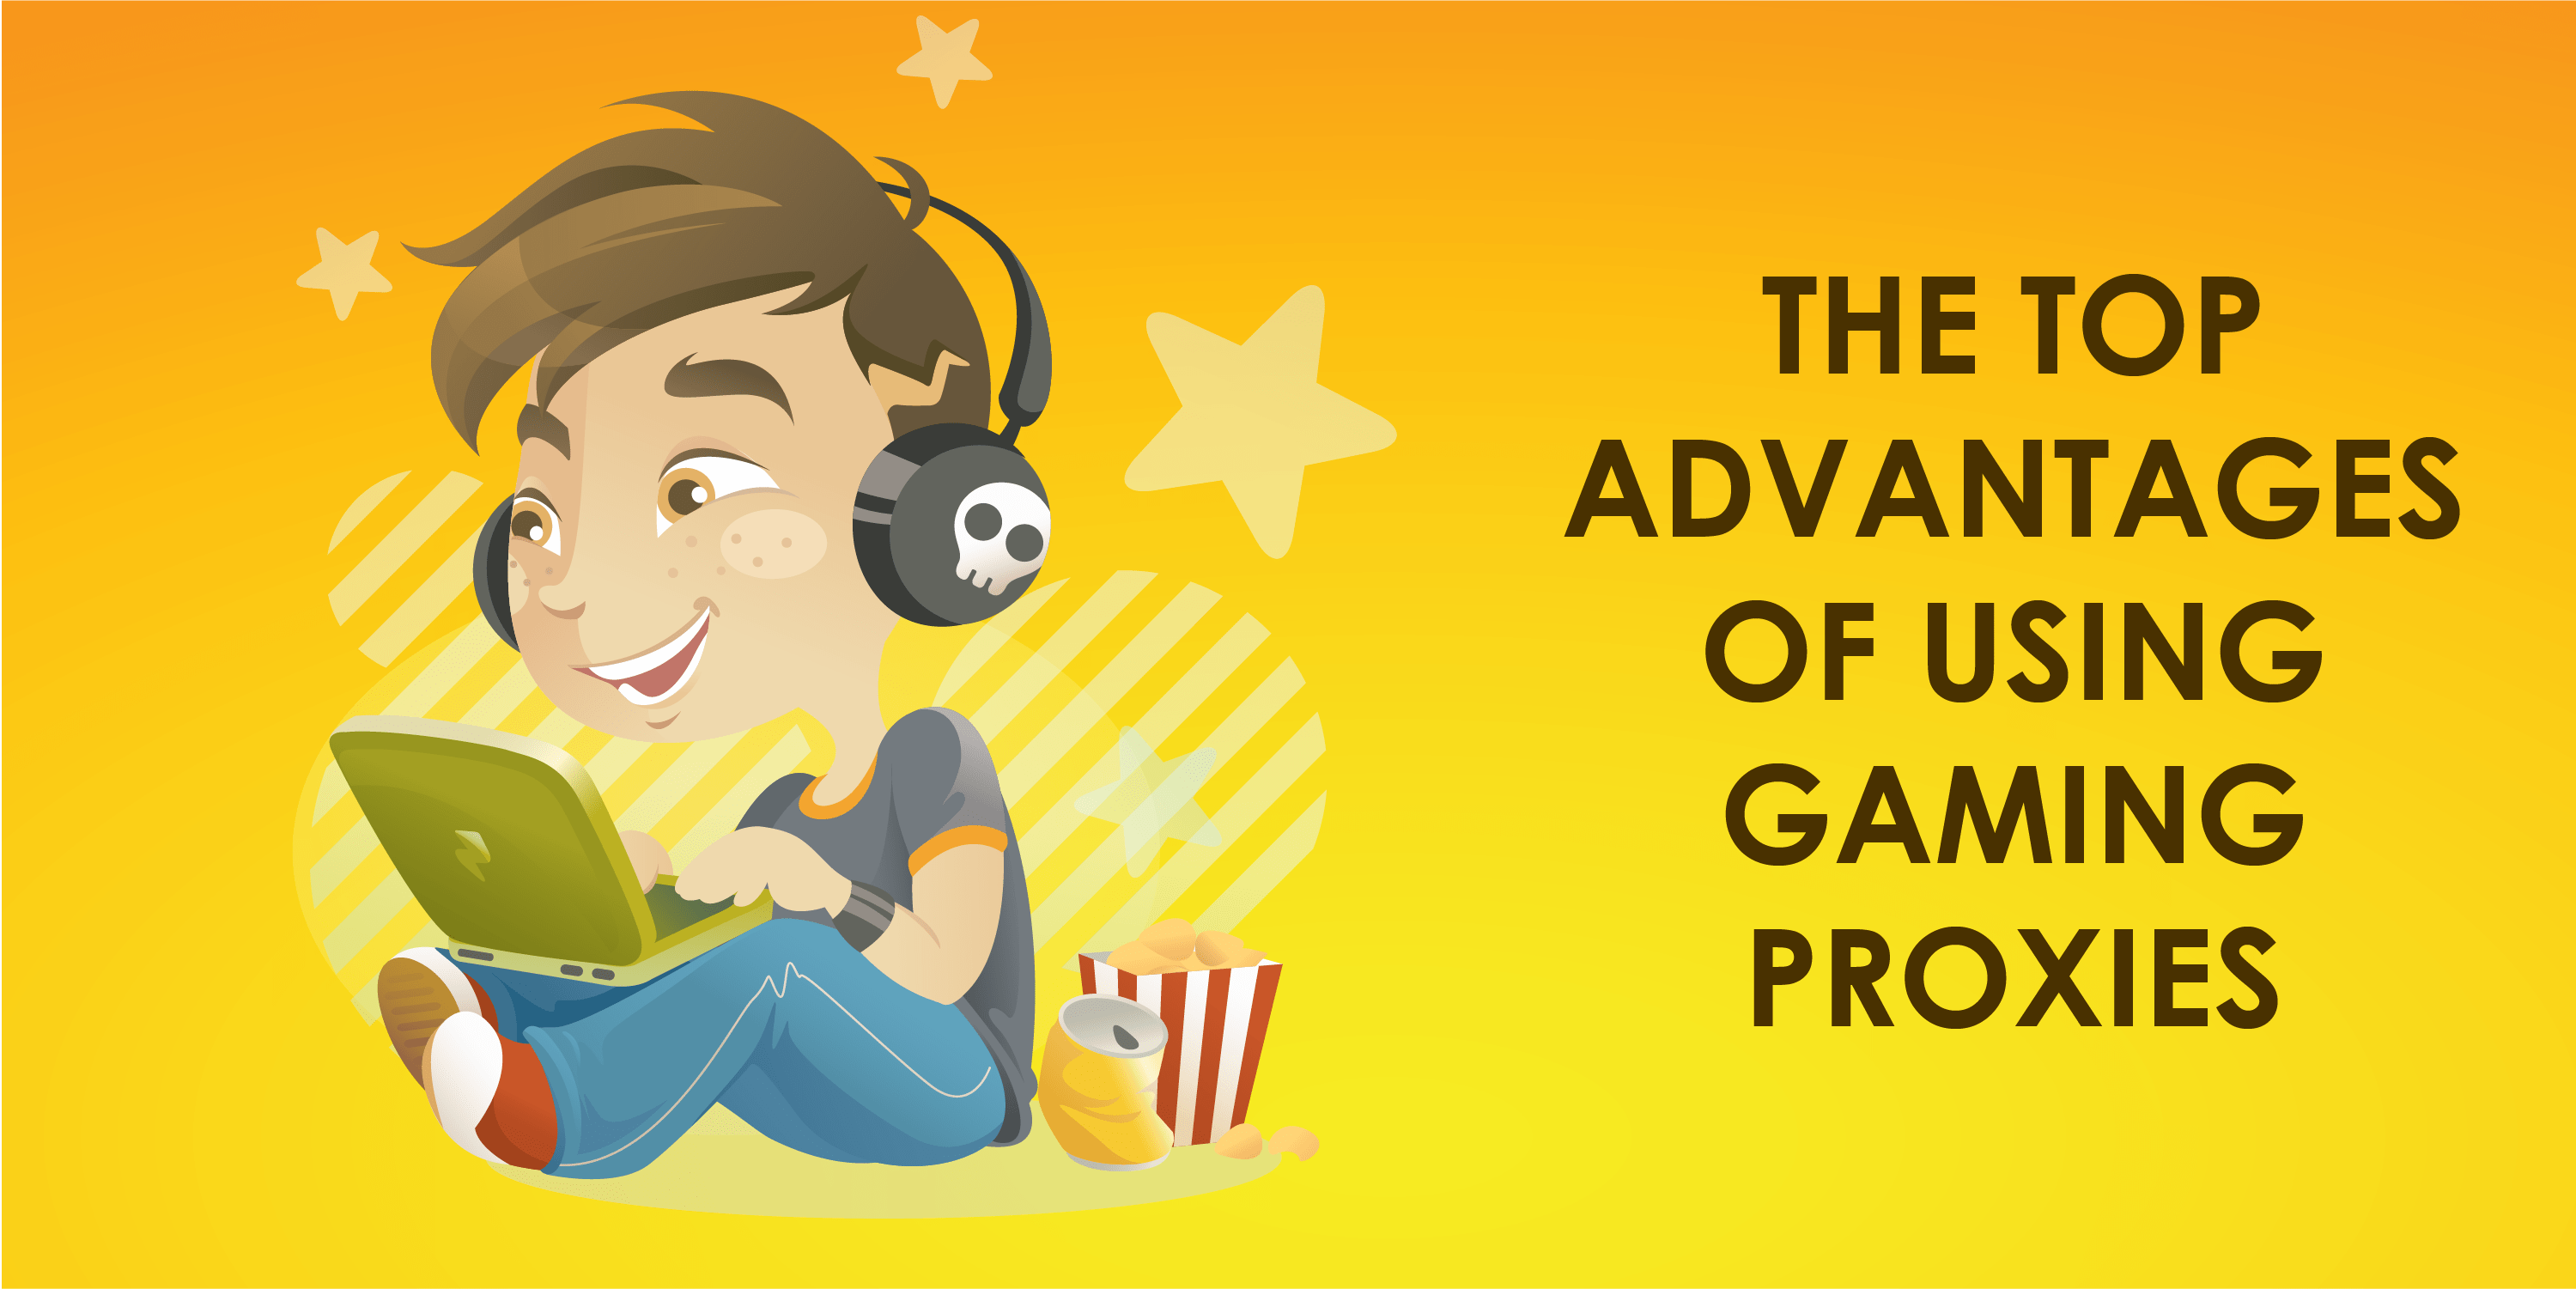 THE TOP ADVANTAGES OF USING GAMING PROXIES